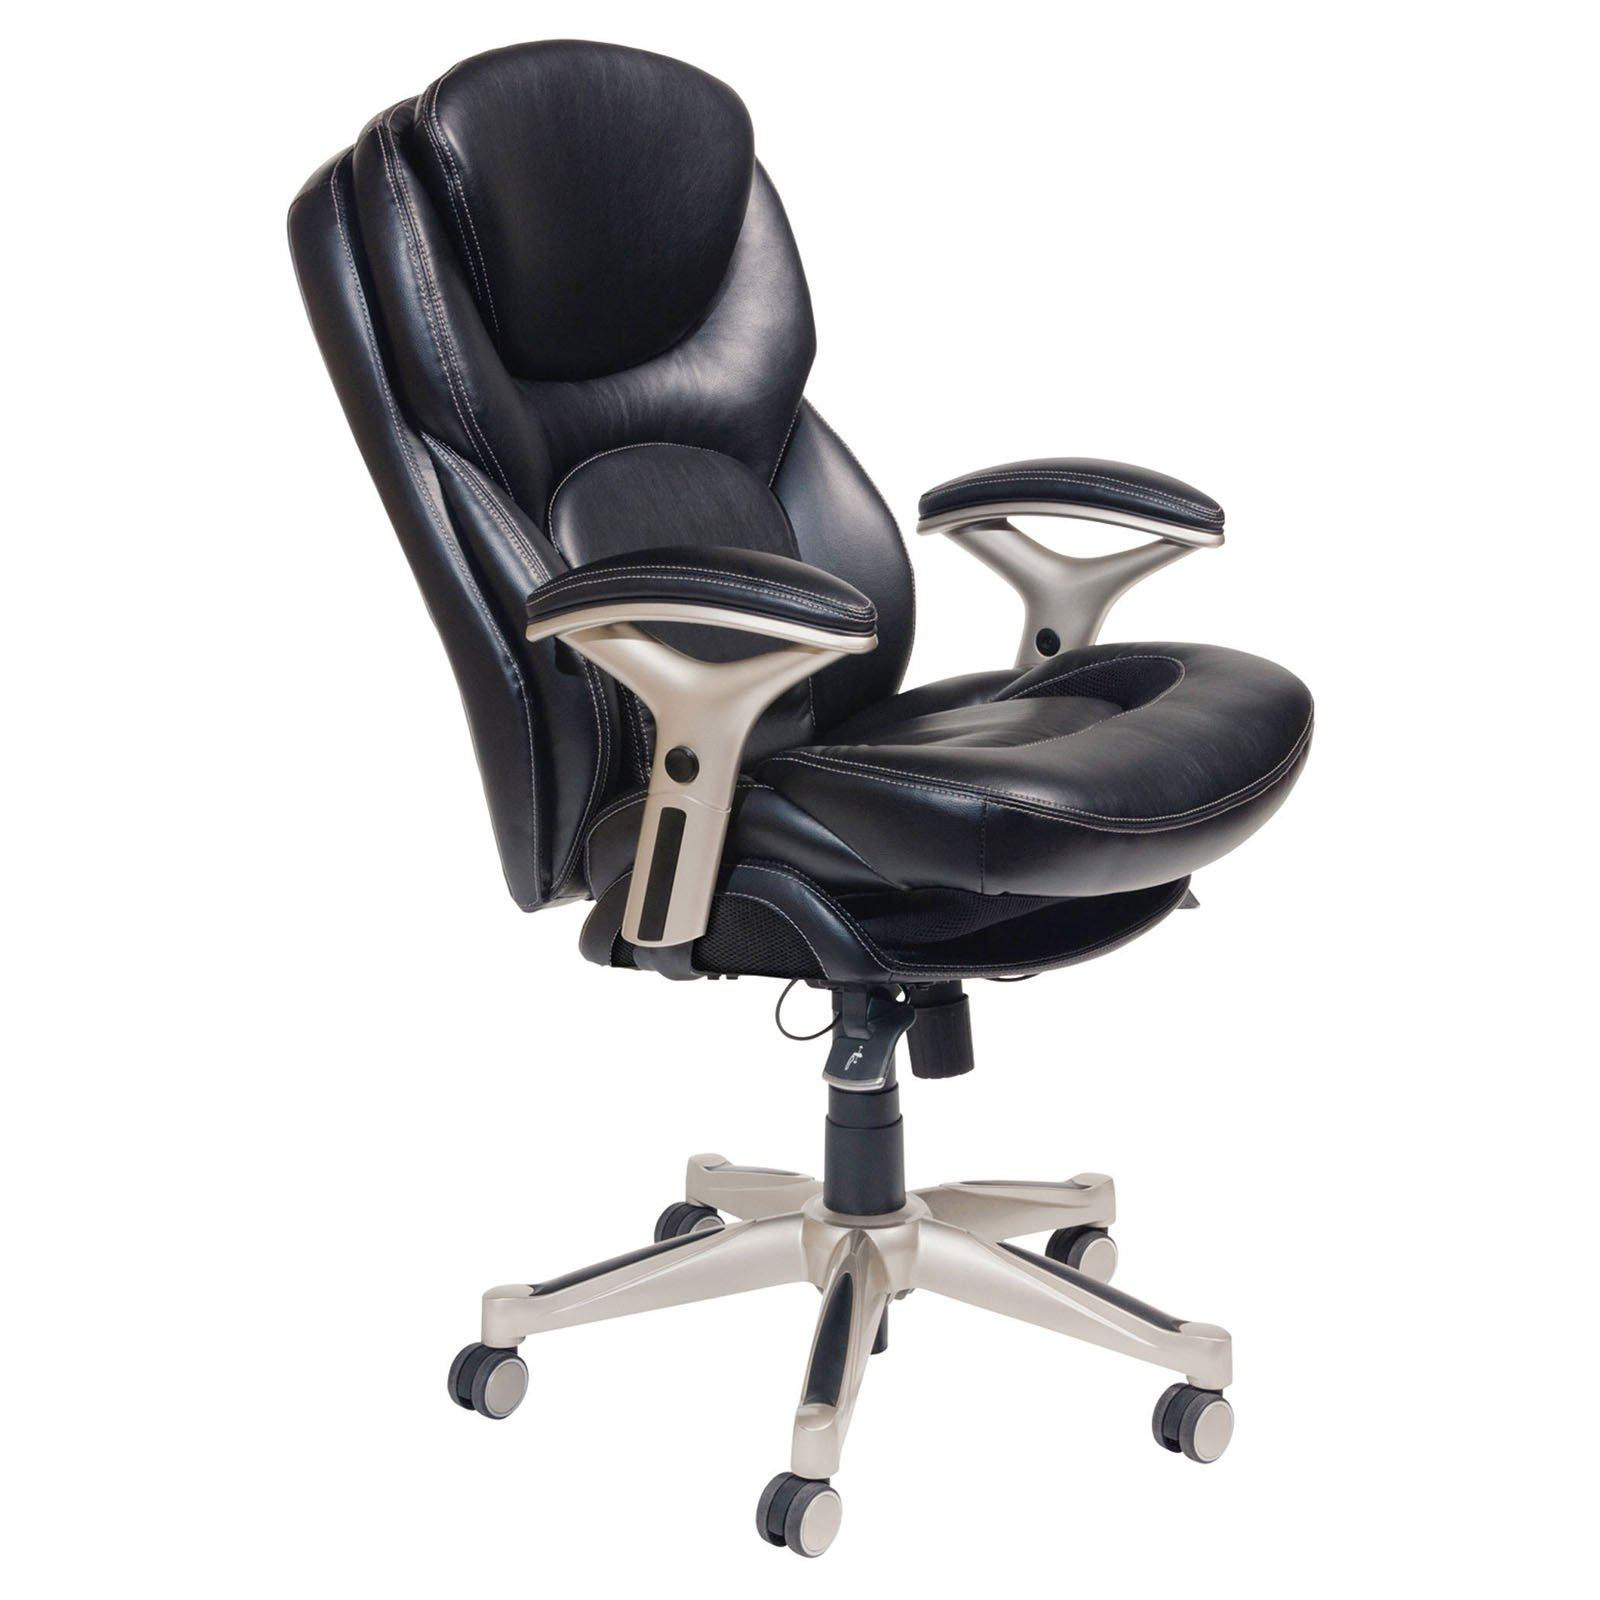 Serta Back in Motion Health and Wellness Mid-Back Bonded Leather Executive Office Chair, Smooth Black